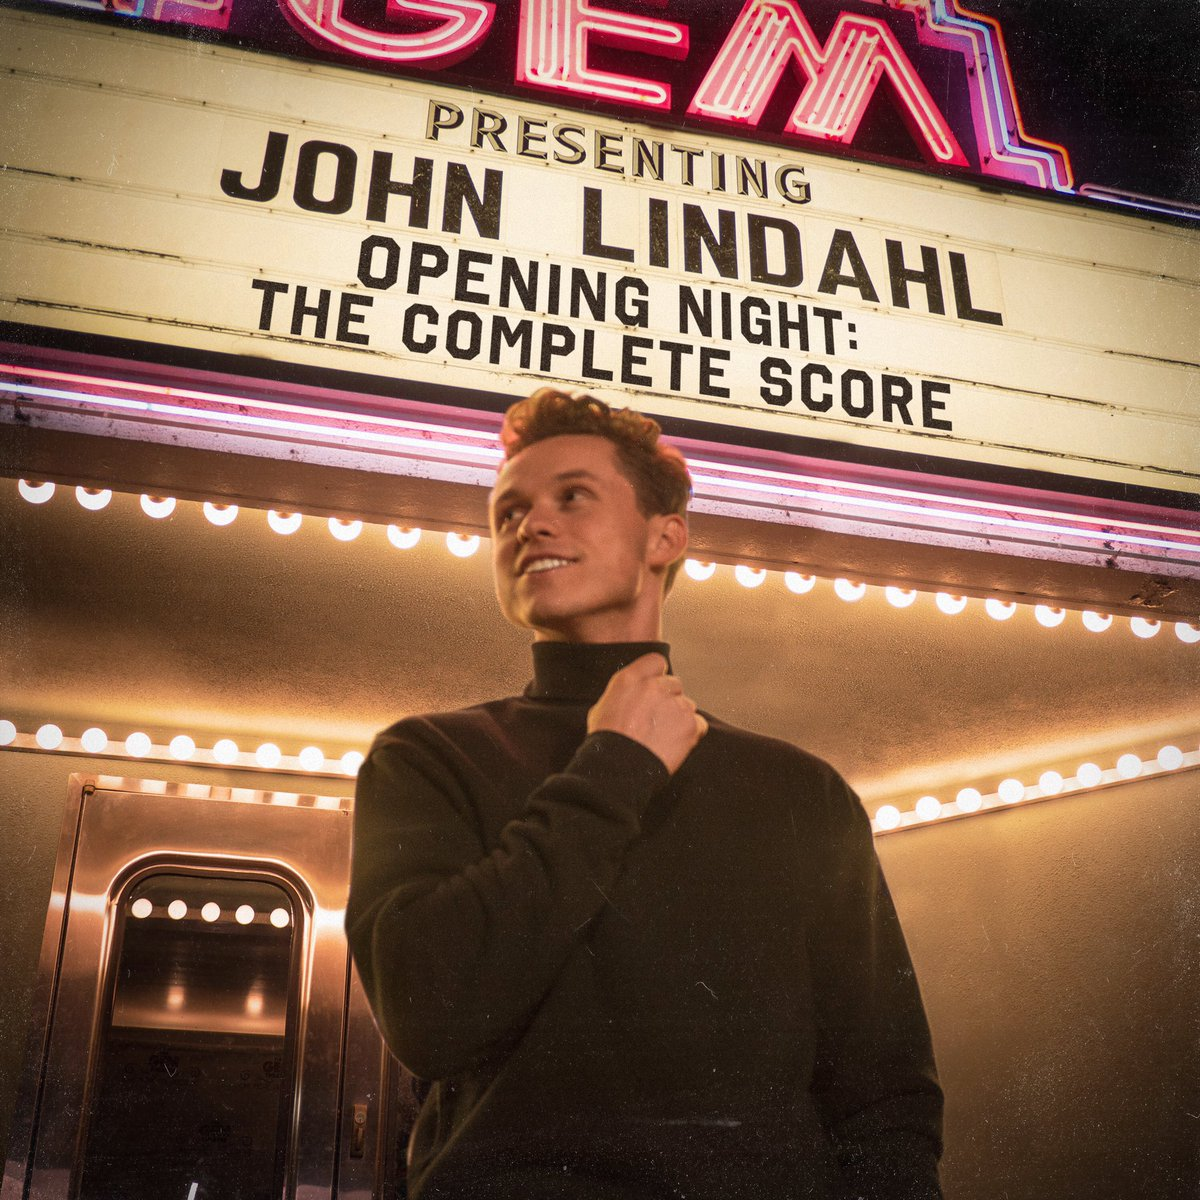 .@JohnLindahl's album 'Opening Night: The Complete Score' is available NOW‼️ Listen Here: johnlindahl.lnk.to/OpeningNightTCS